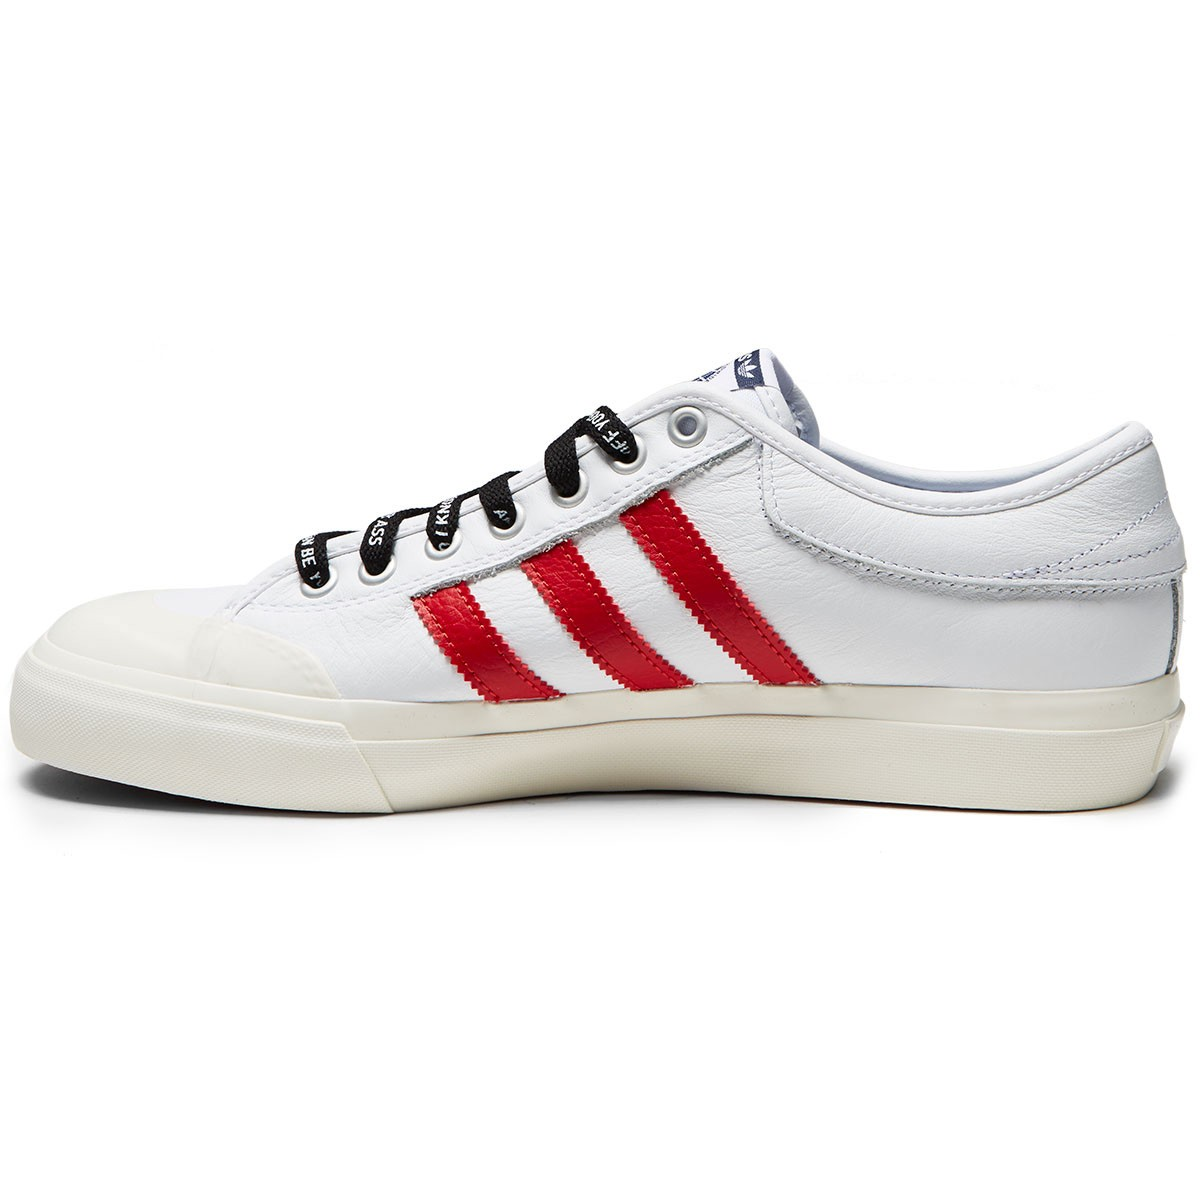 Adidas x Trap Lord Ferg Matchcourt Shoes White Scarlet